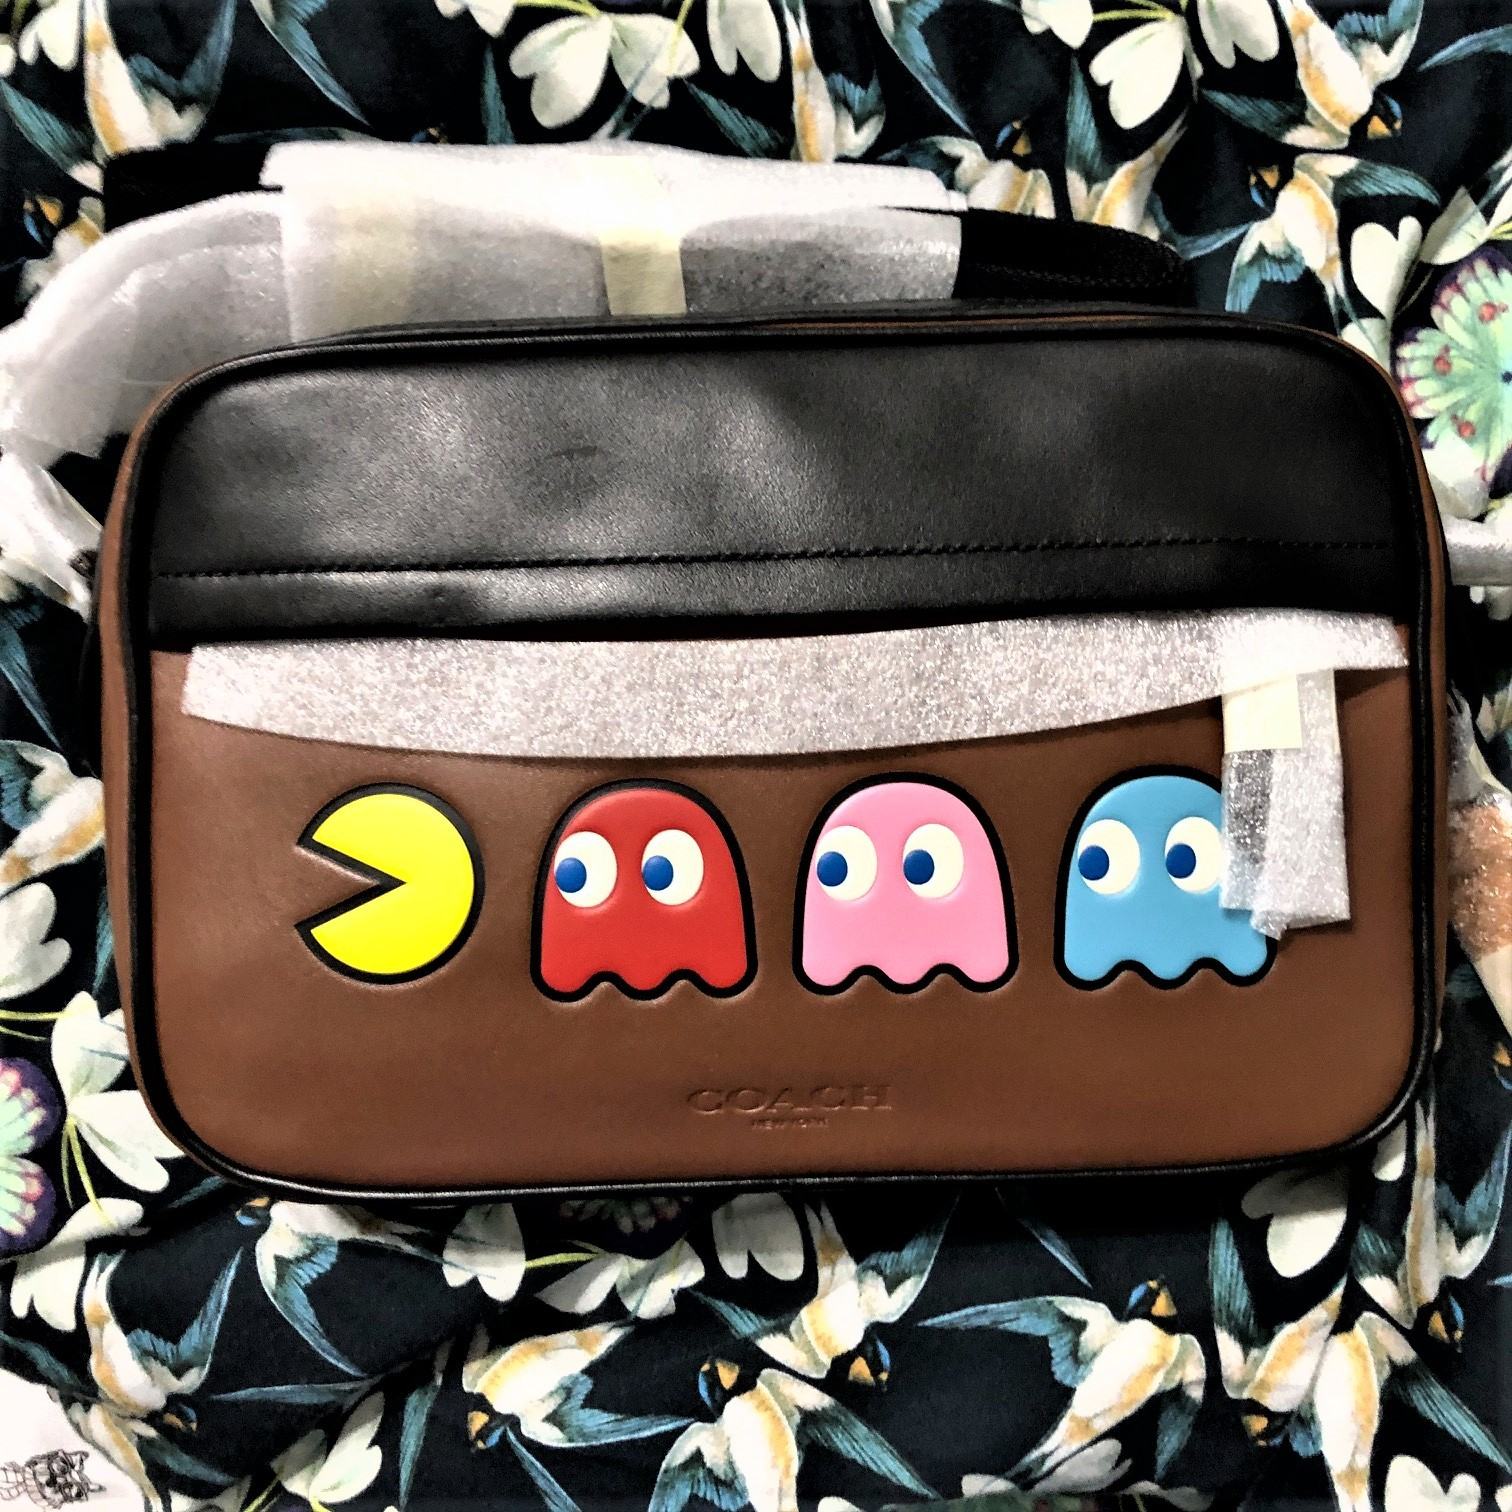 Primary image for Coach Graham Pac-Man Motif Saddle Leather Crossbody Bag F72921